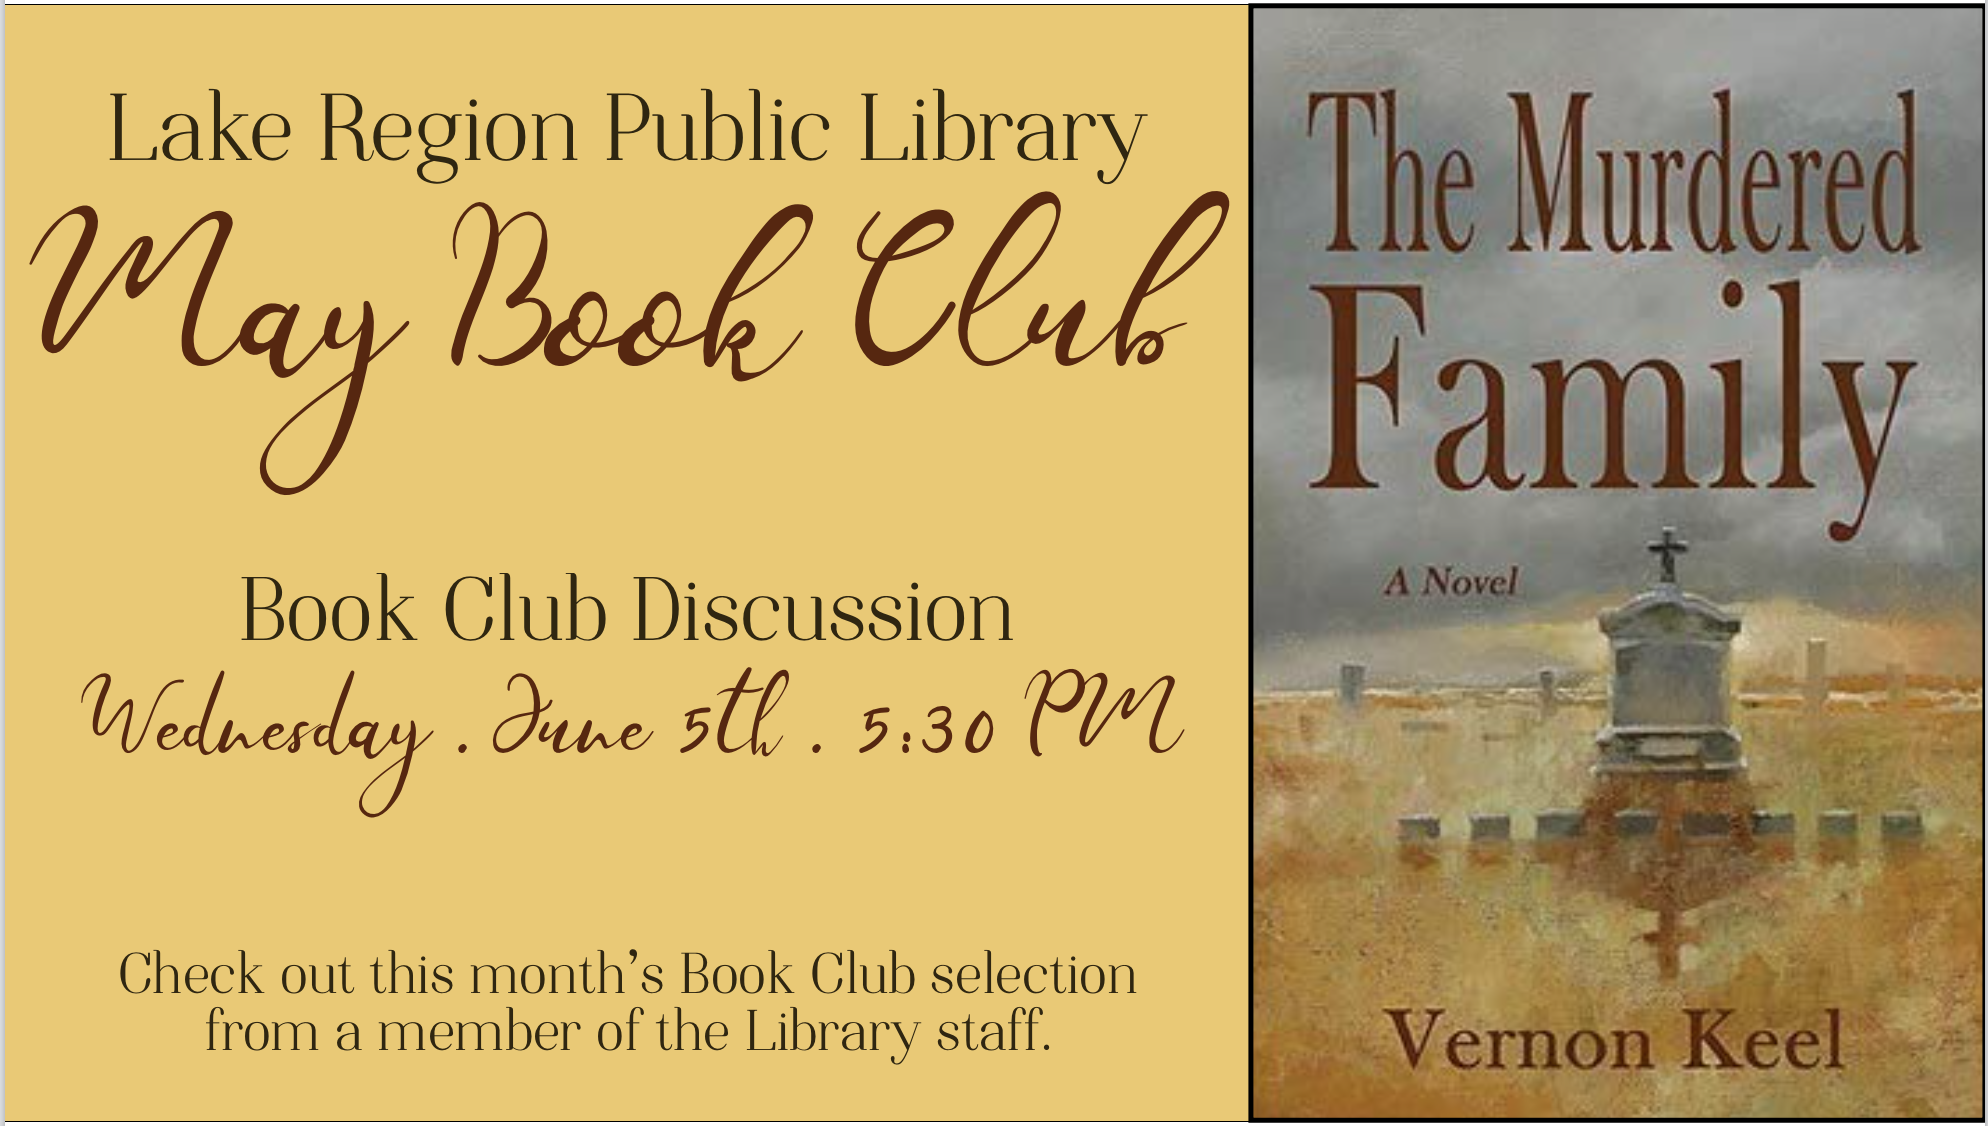 LRPL May Book Club: The Murdered Family